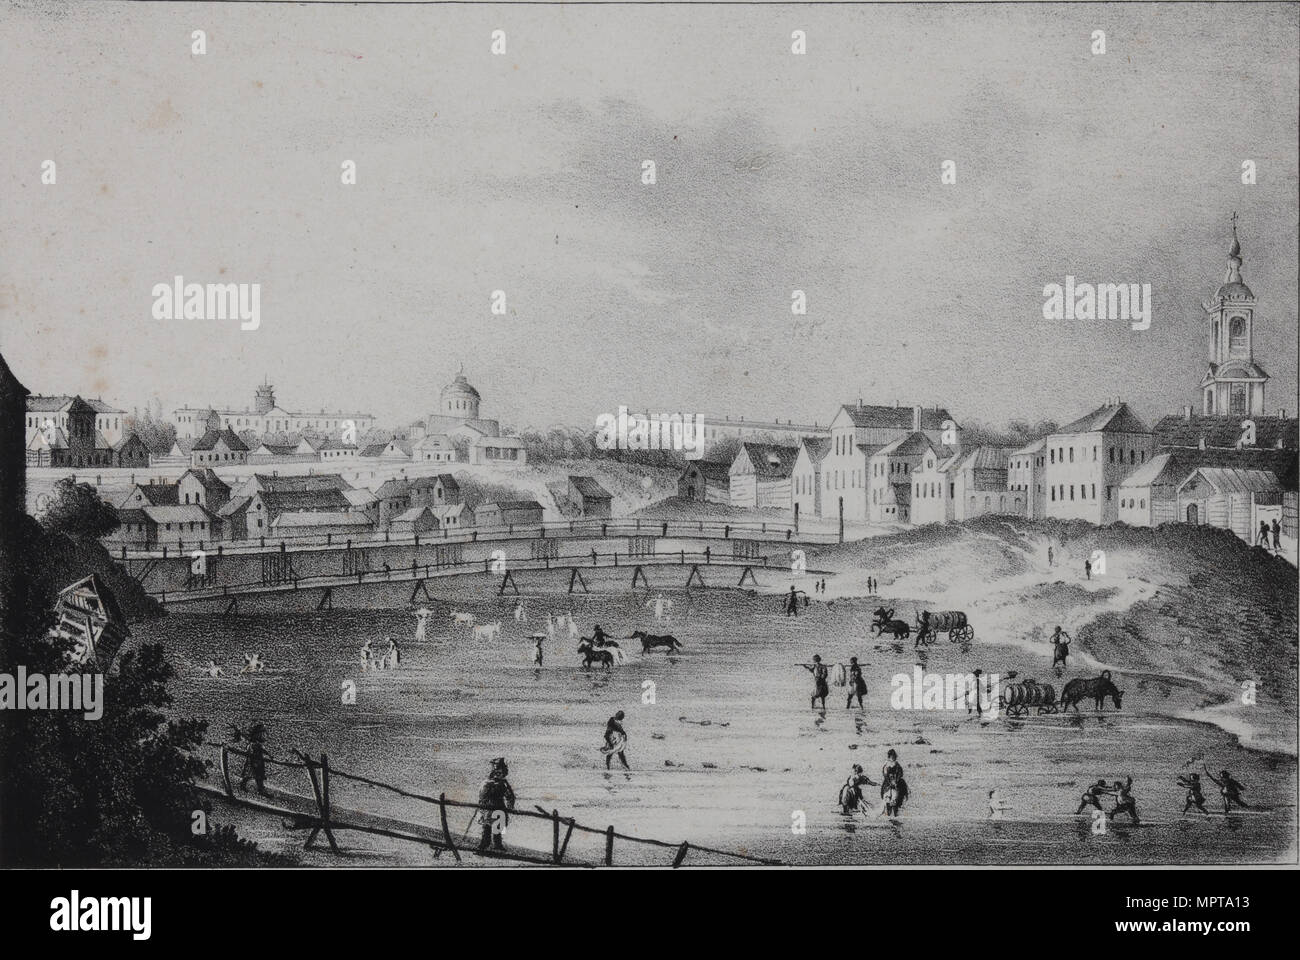 View of Oryol, 1830s. - Stock Image